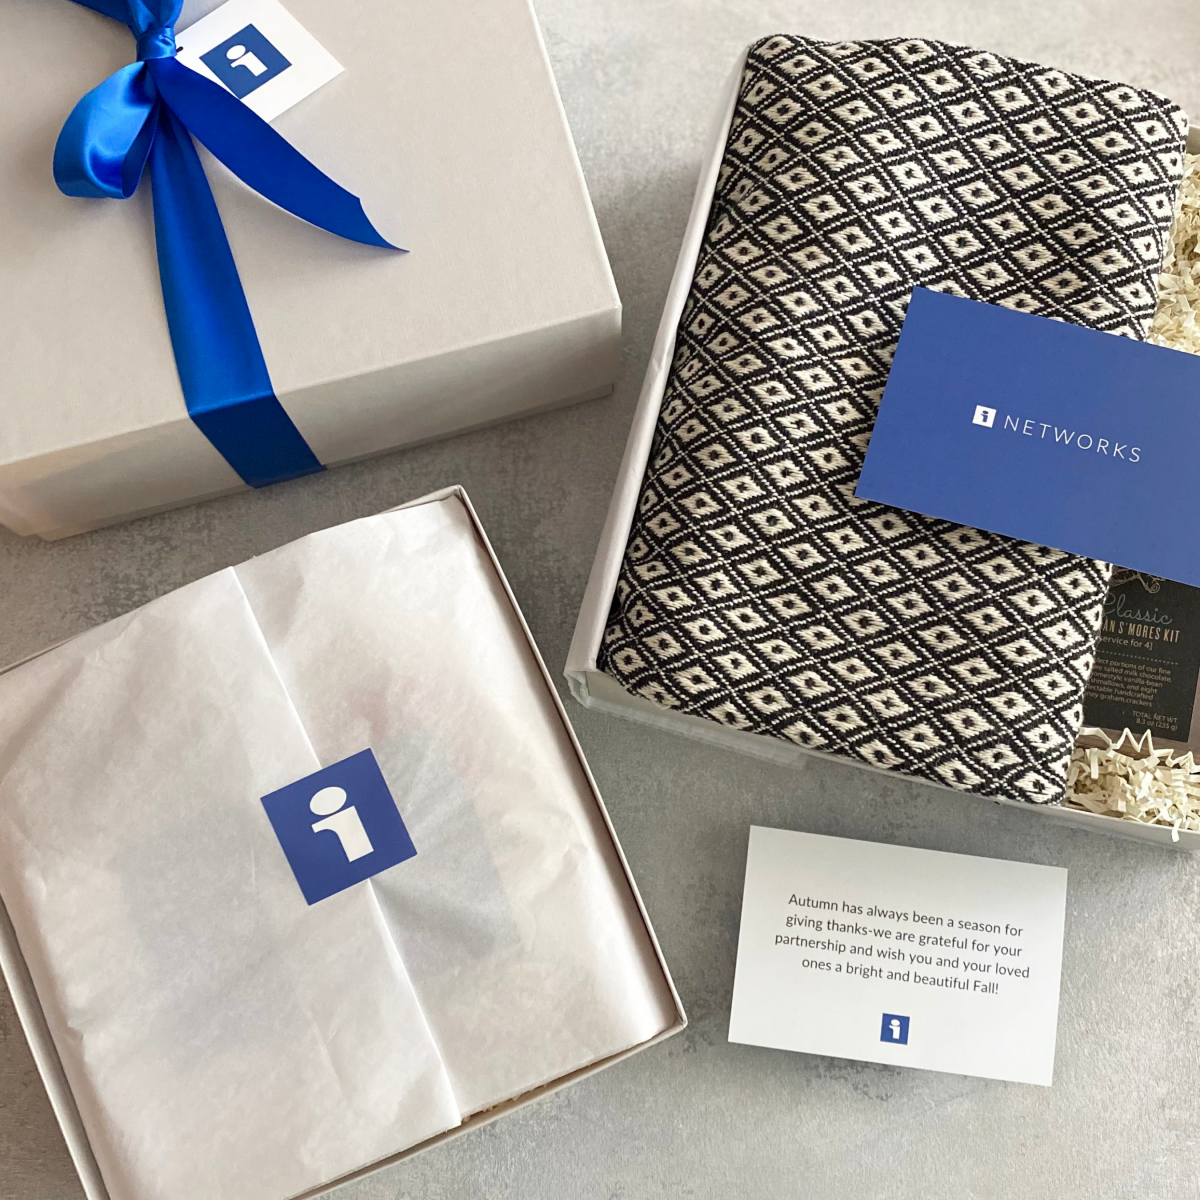 Corporate Gift Boxes For Clients- ITN Networks Fall